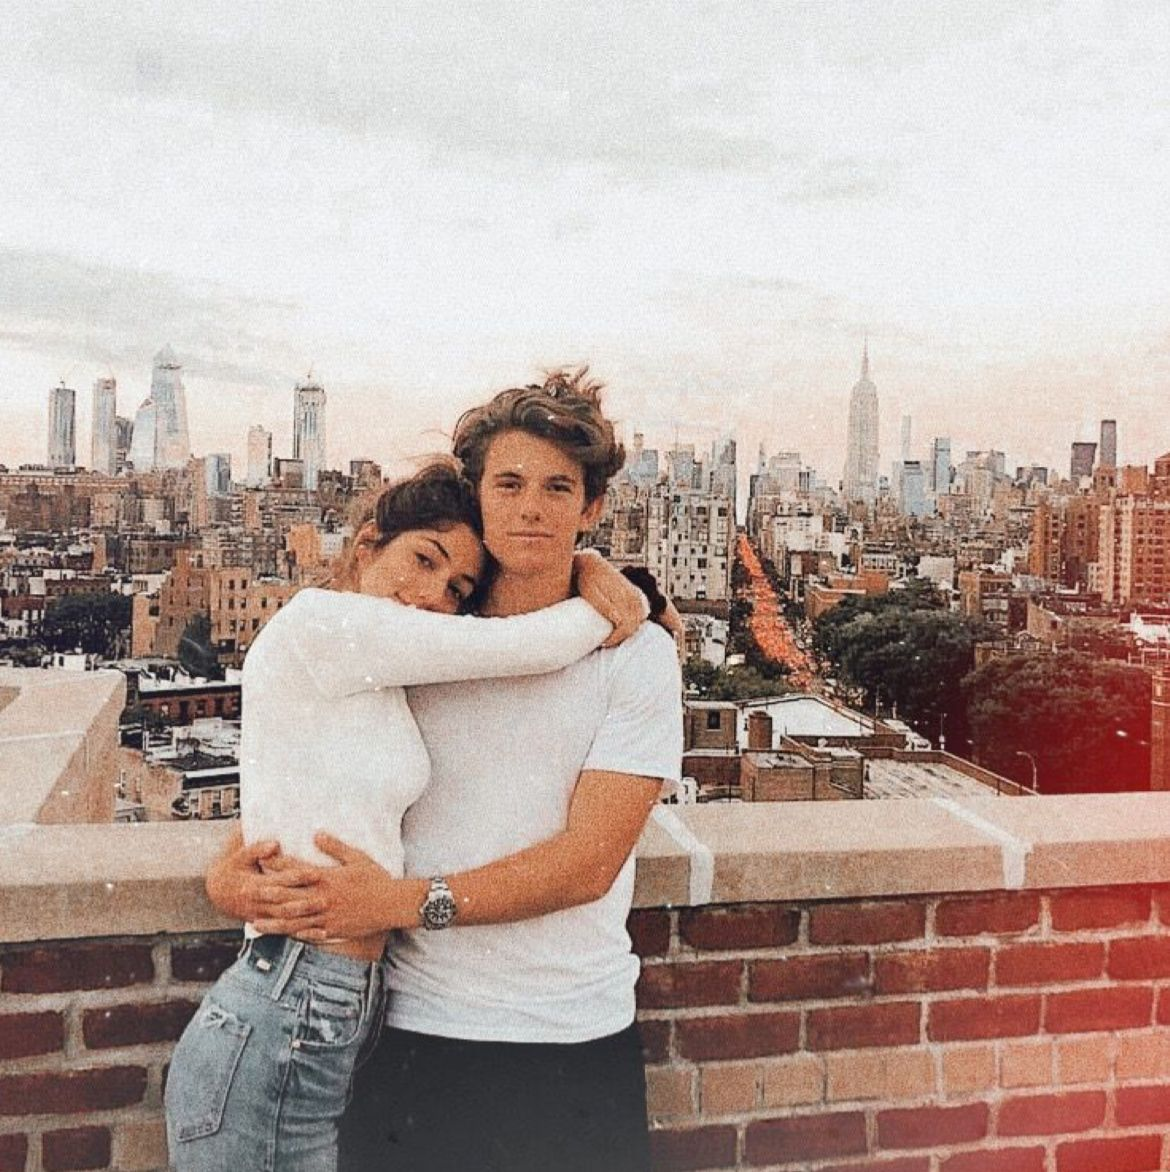 , 𝐚𝐥𝐞𝐬𝐬𝐚𝐧𝐝𝐫𝐚 𝐟𝐨𝐫𝐞𝐯𝐞𝐫 ✰ (@alessandra.forever) • Instagram photos and videos, Travel Couple, Travel Couple